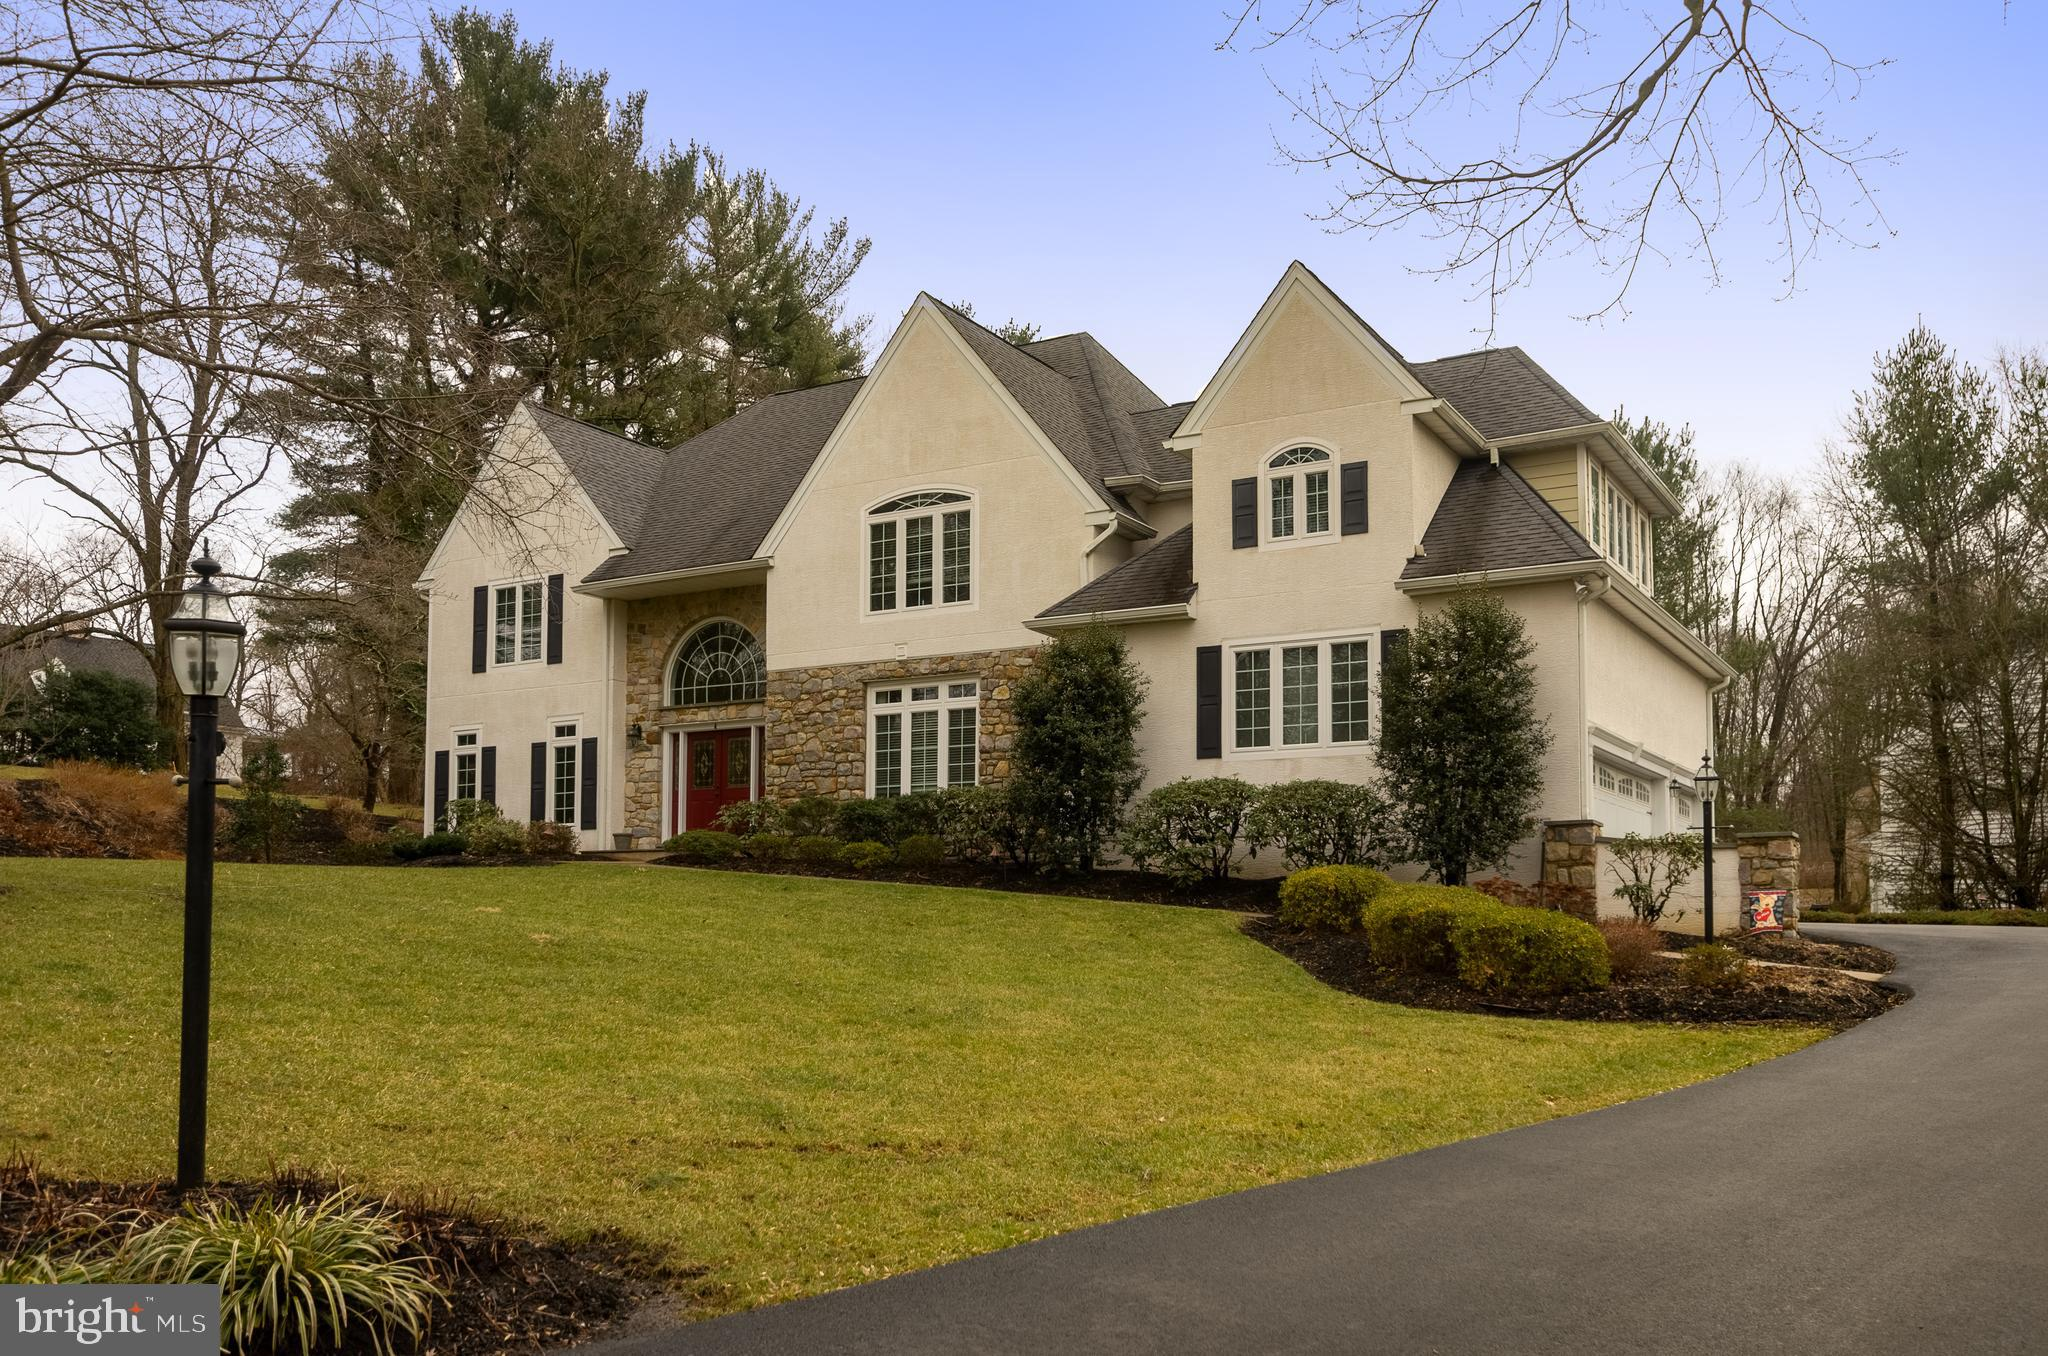 1420 ARDLEIGH CIRCLE, WEST CHESTER, PA 19380